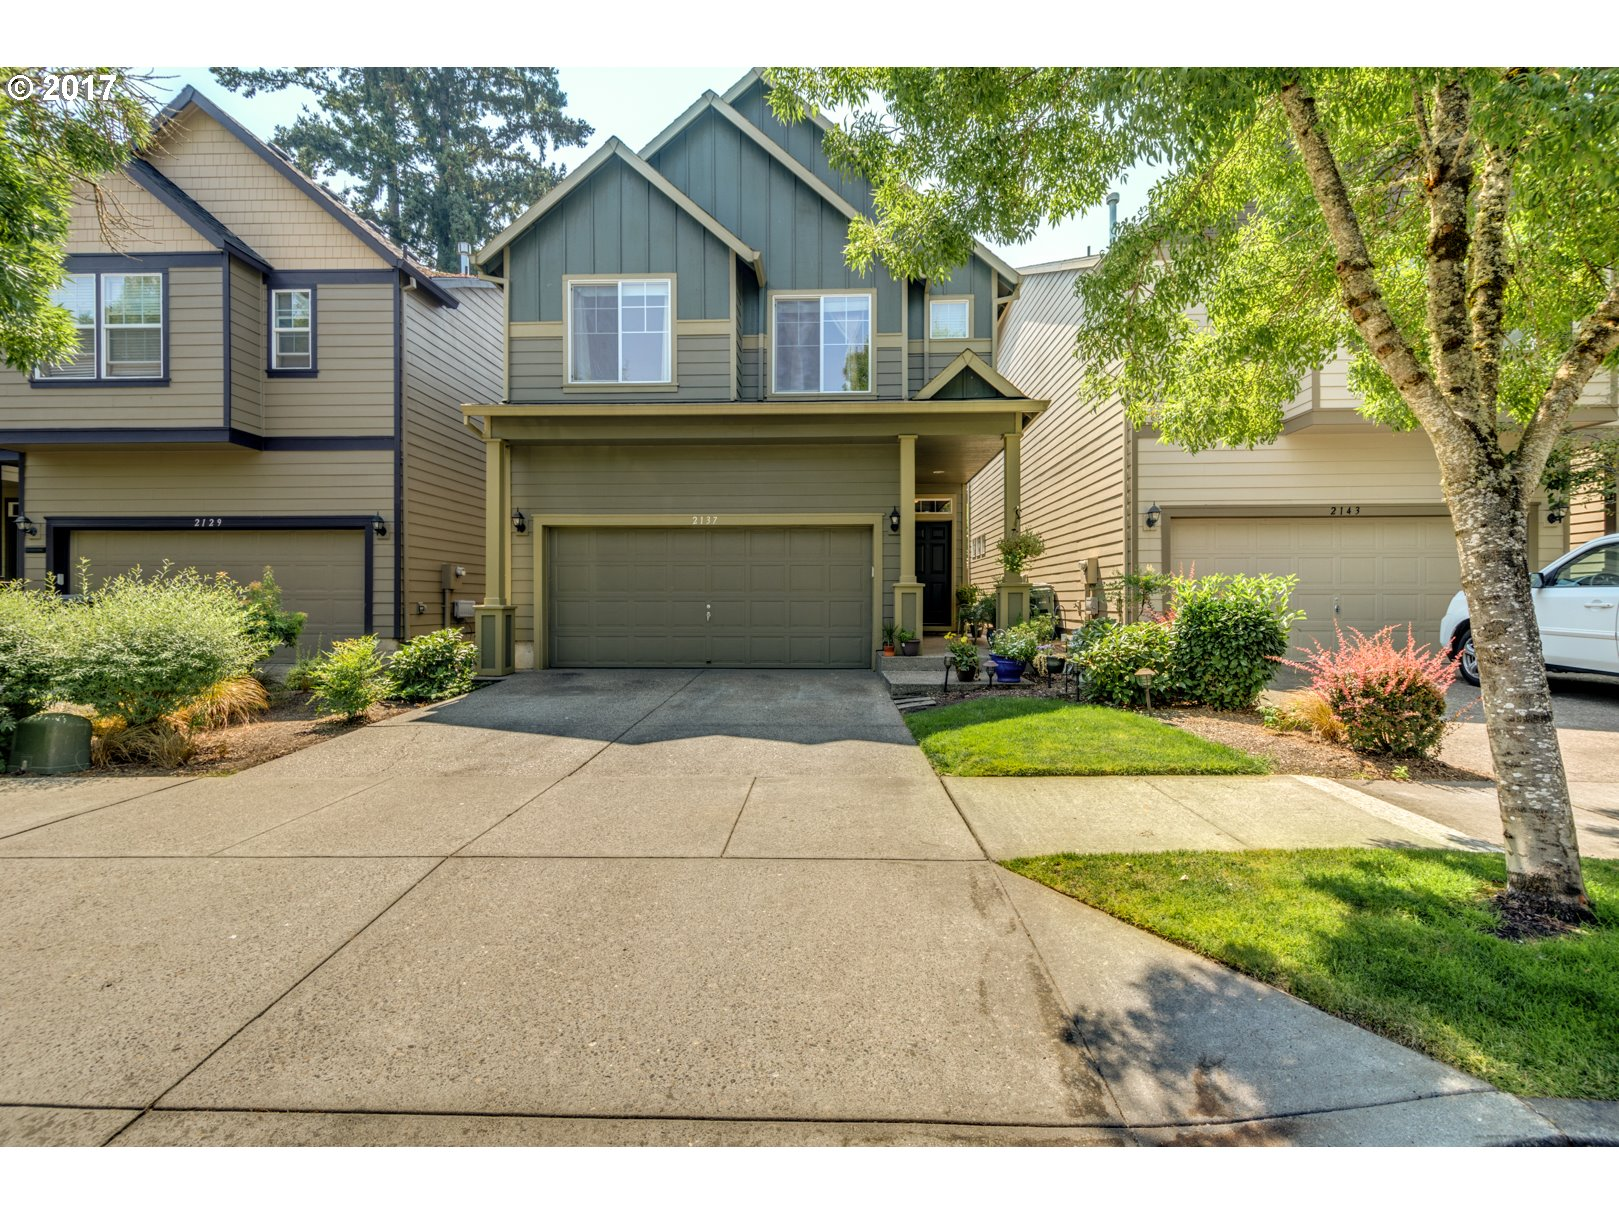 2137 NW 3RD AVE, Hillsboro, OR 97124